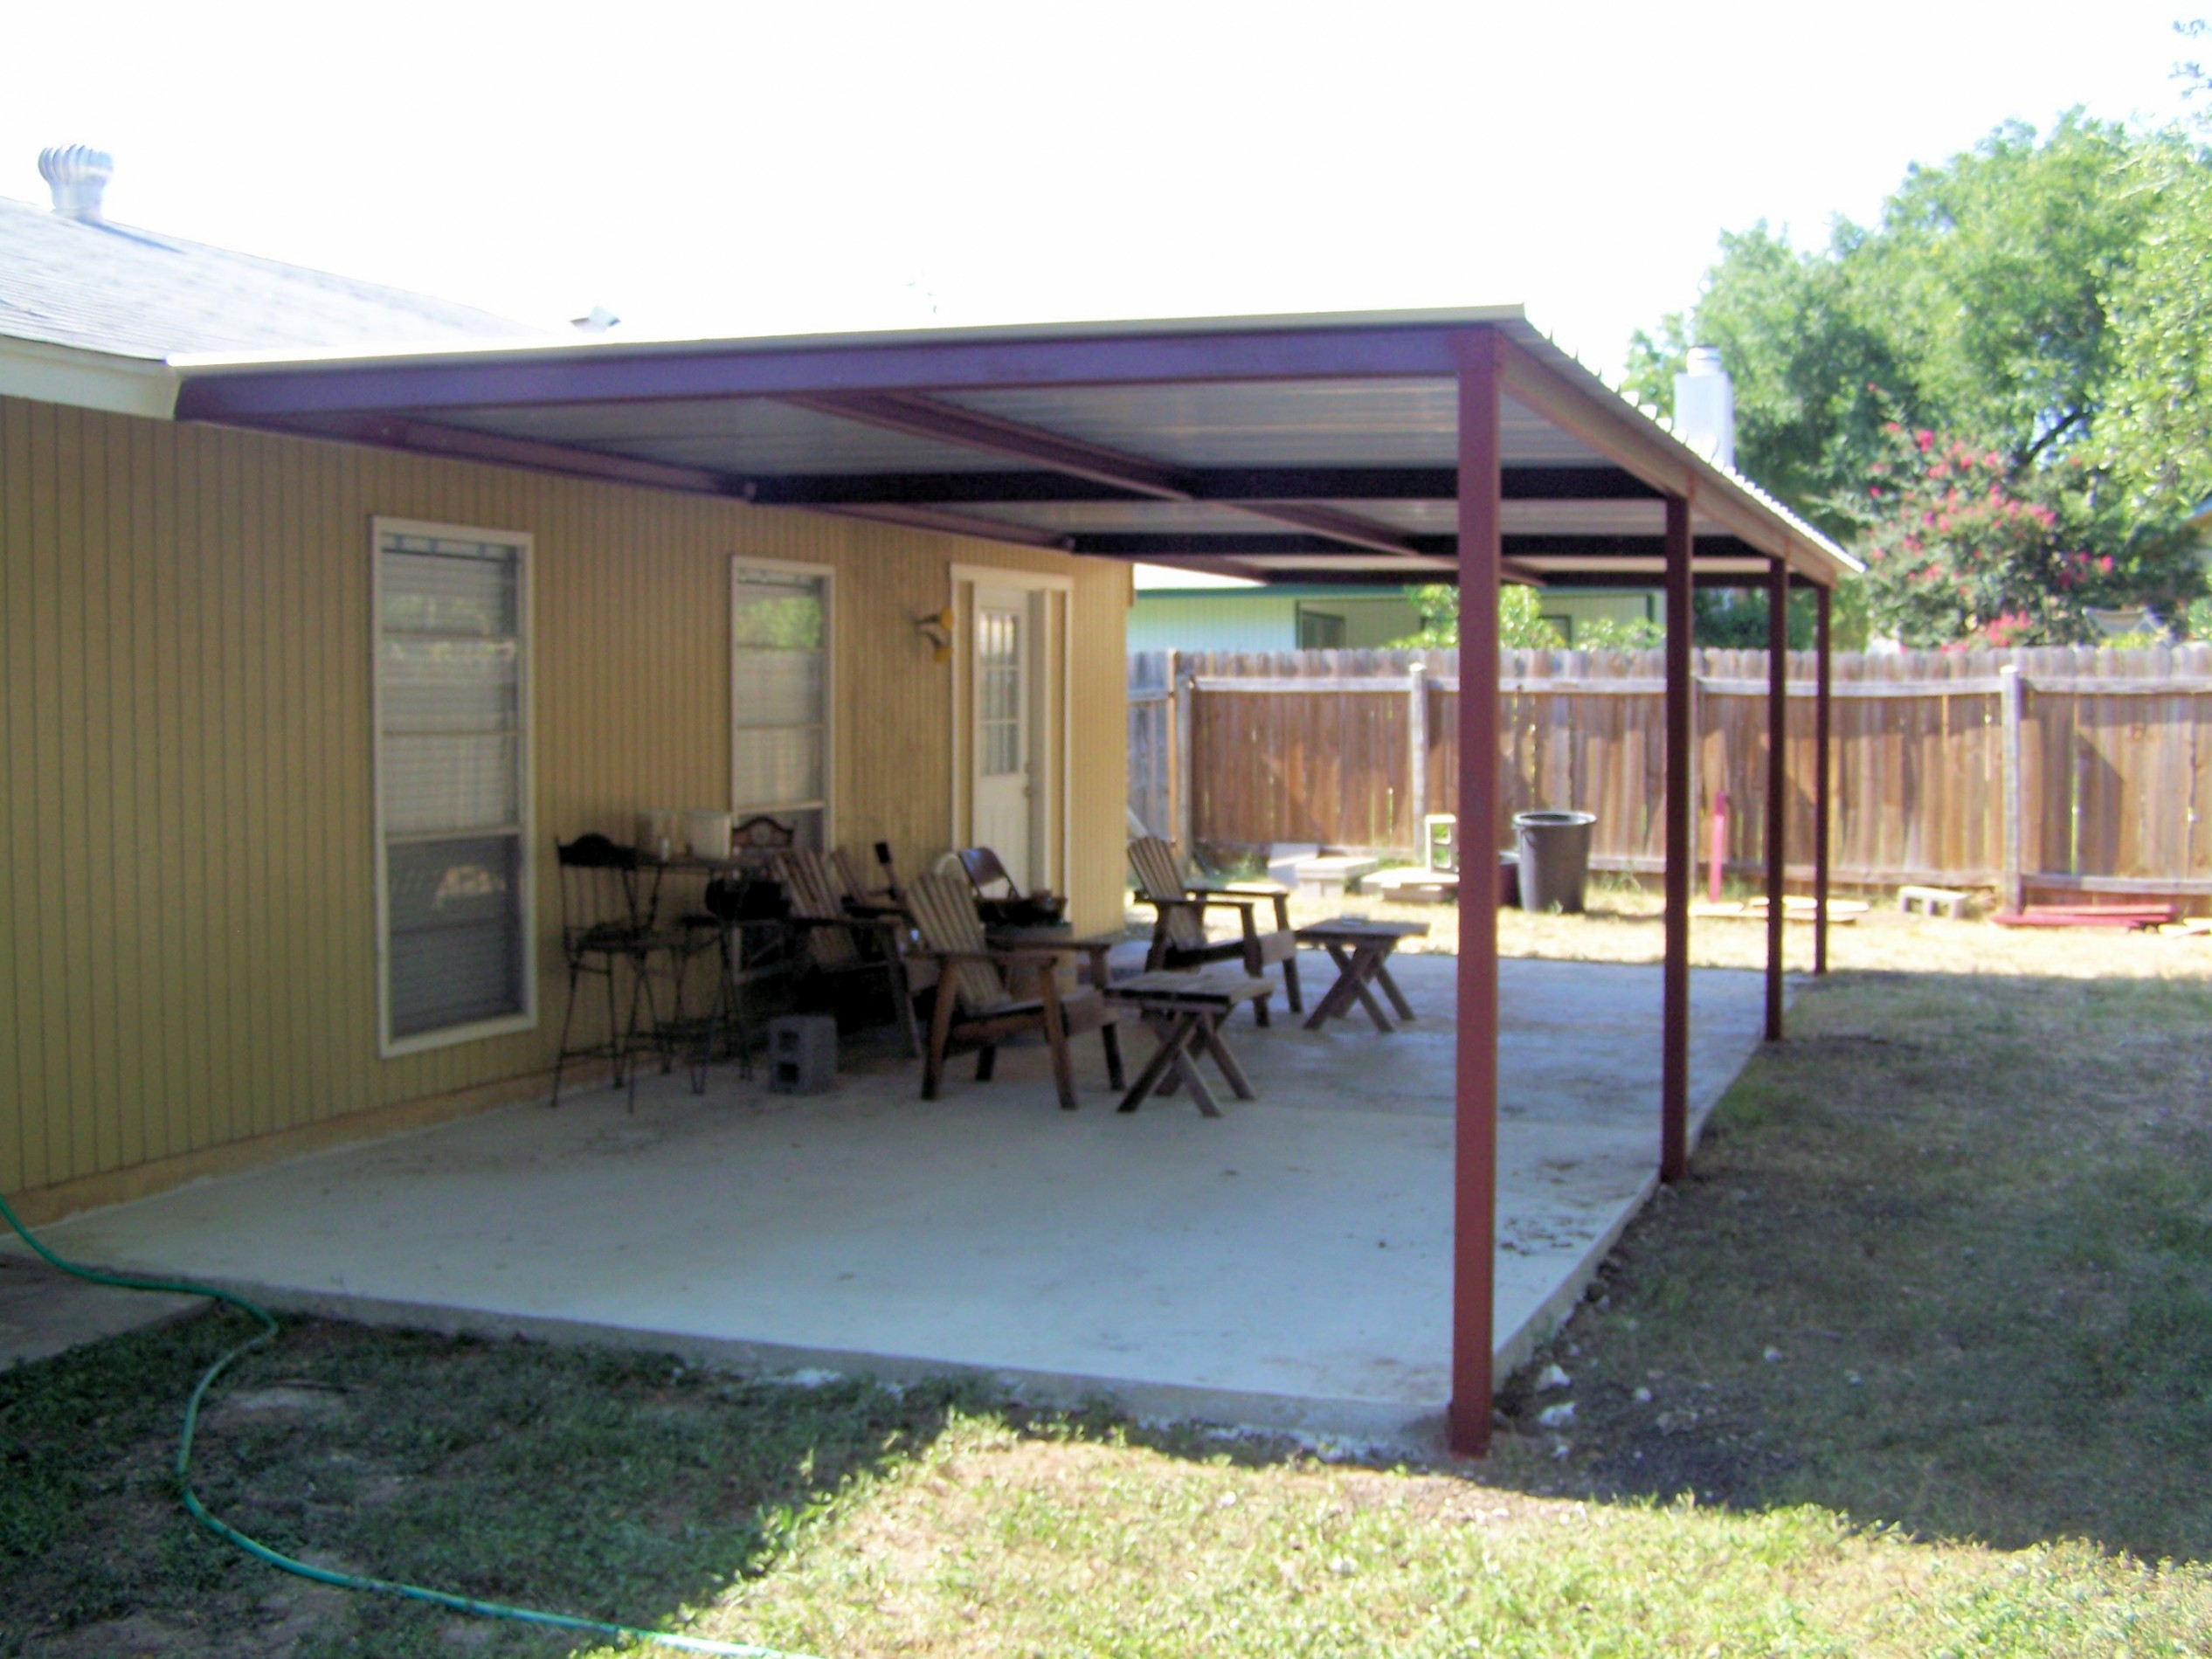 Never Underestimate The Influence Of Carport Awnings For Sale | carport awnings for sale